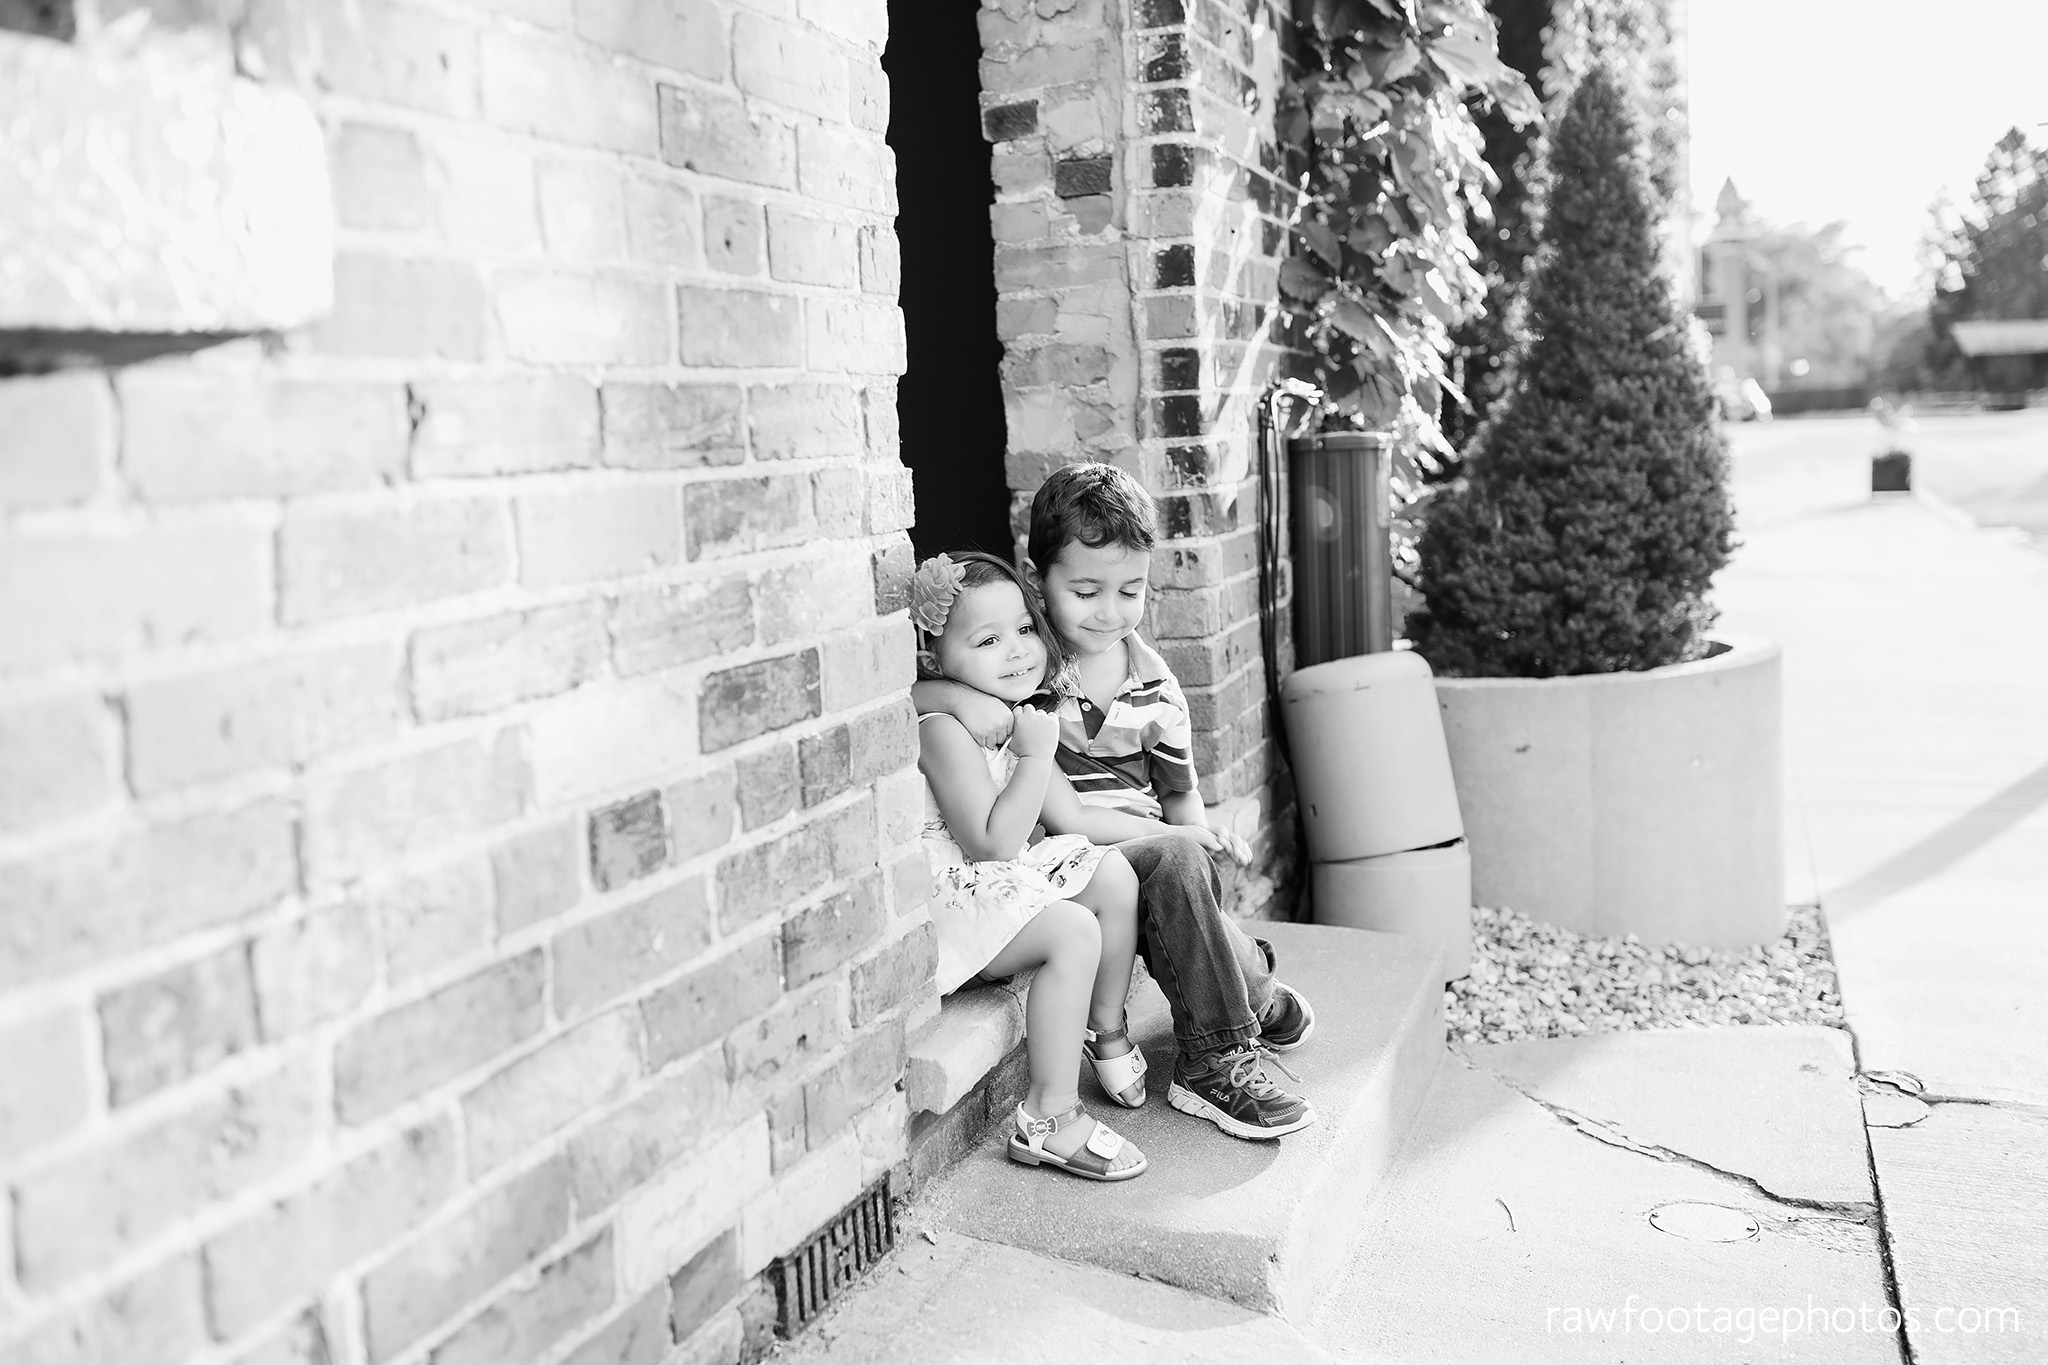 london_ontario_family_photographer-stratford_ontario_photographer-raw_footage_photography-lifestyle_photography-candid-golden_hour025.jpg